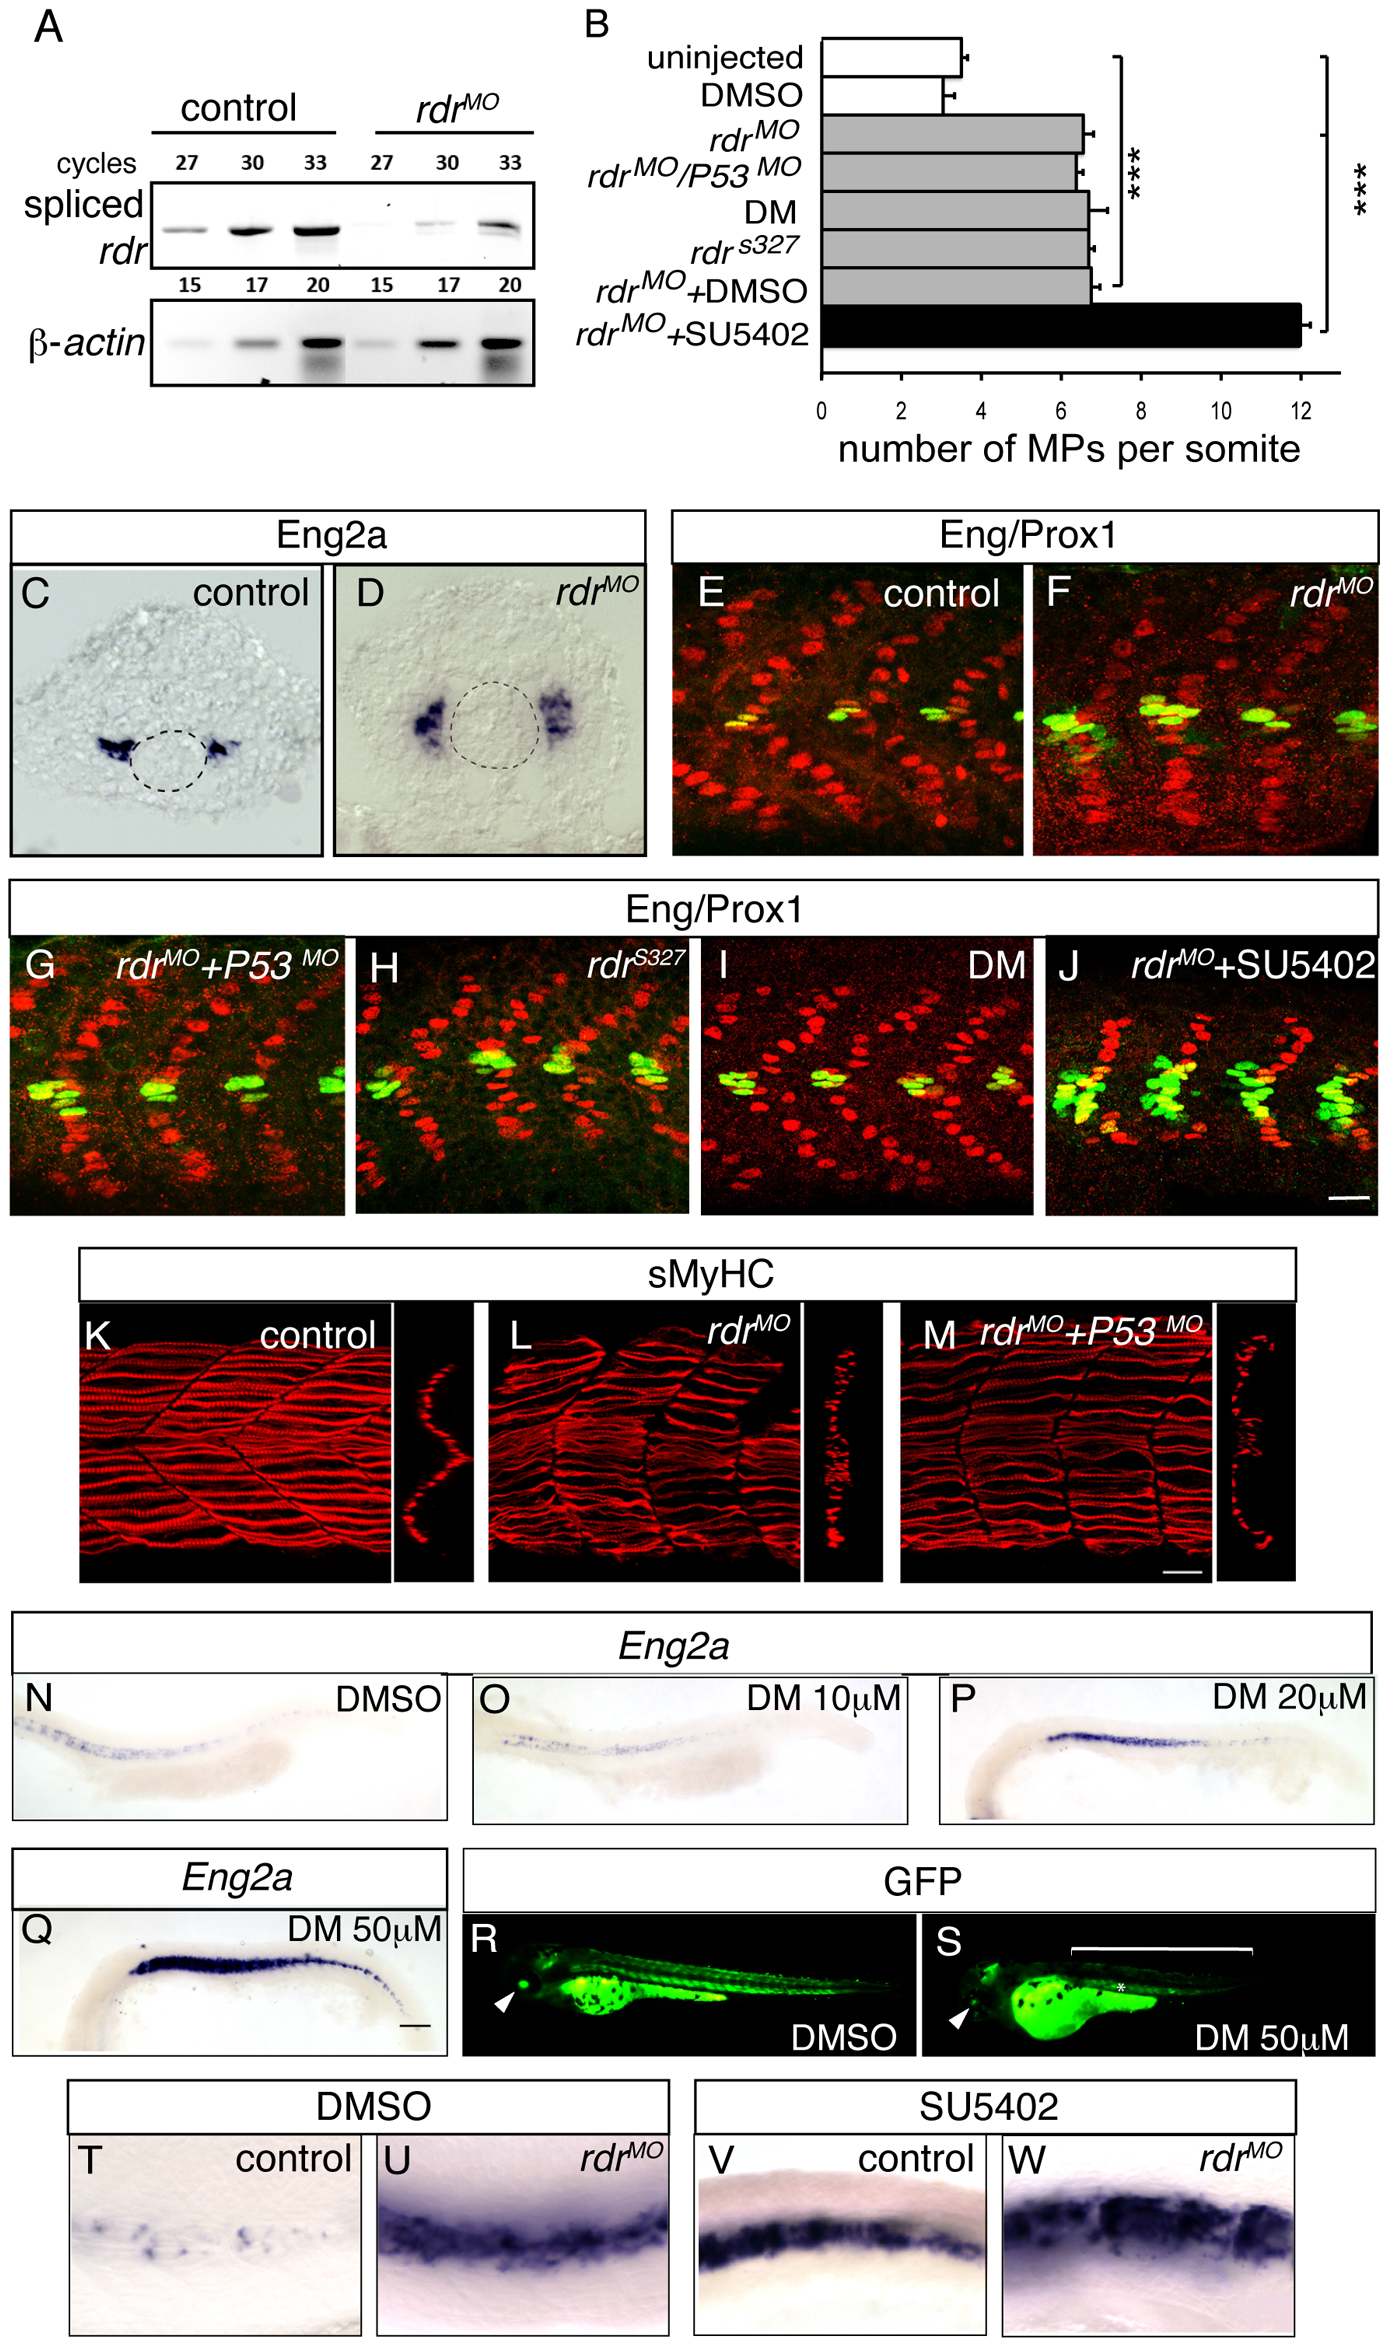 Radar or BMP signaling knock-down impairs MP formation.